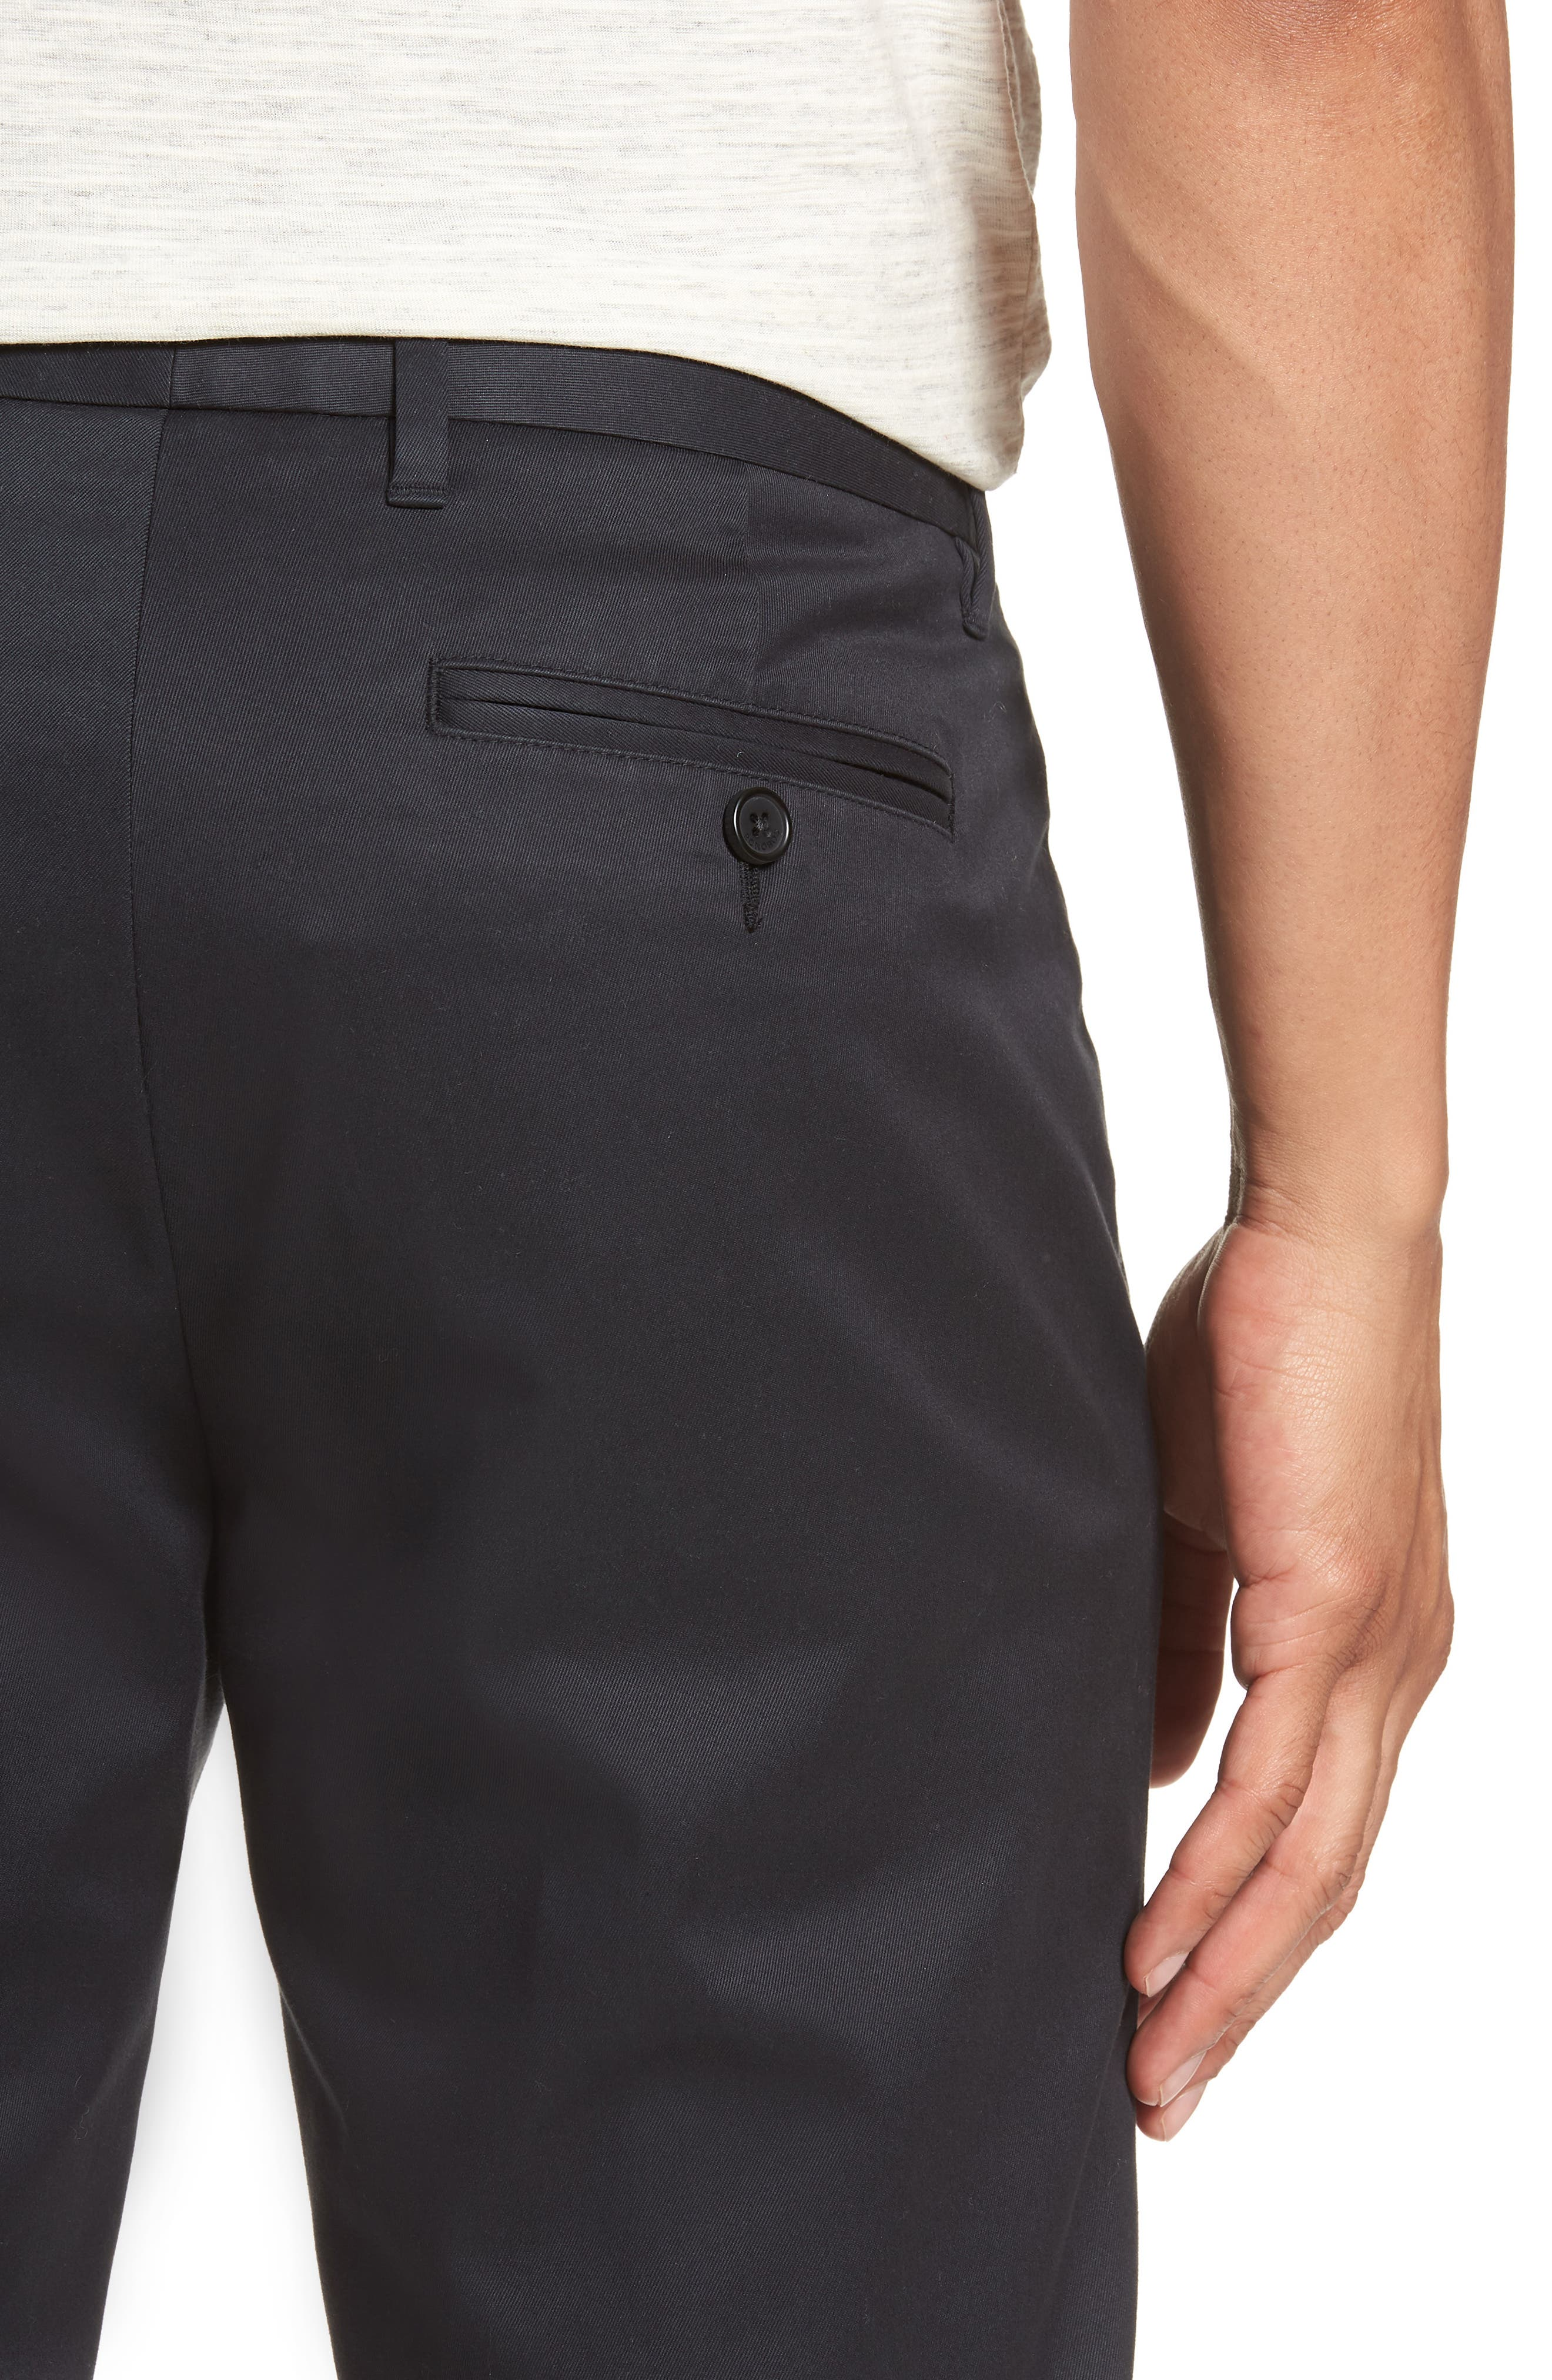 BONOBOS, Weekday Warrior Slim Fit Stretch Dress Pants, Alternate thumbnail 5, color, BLACK